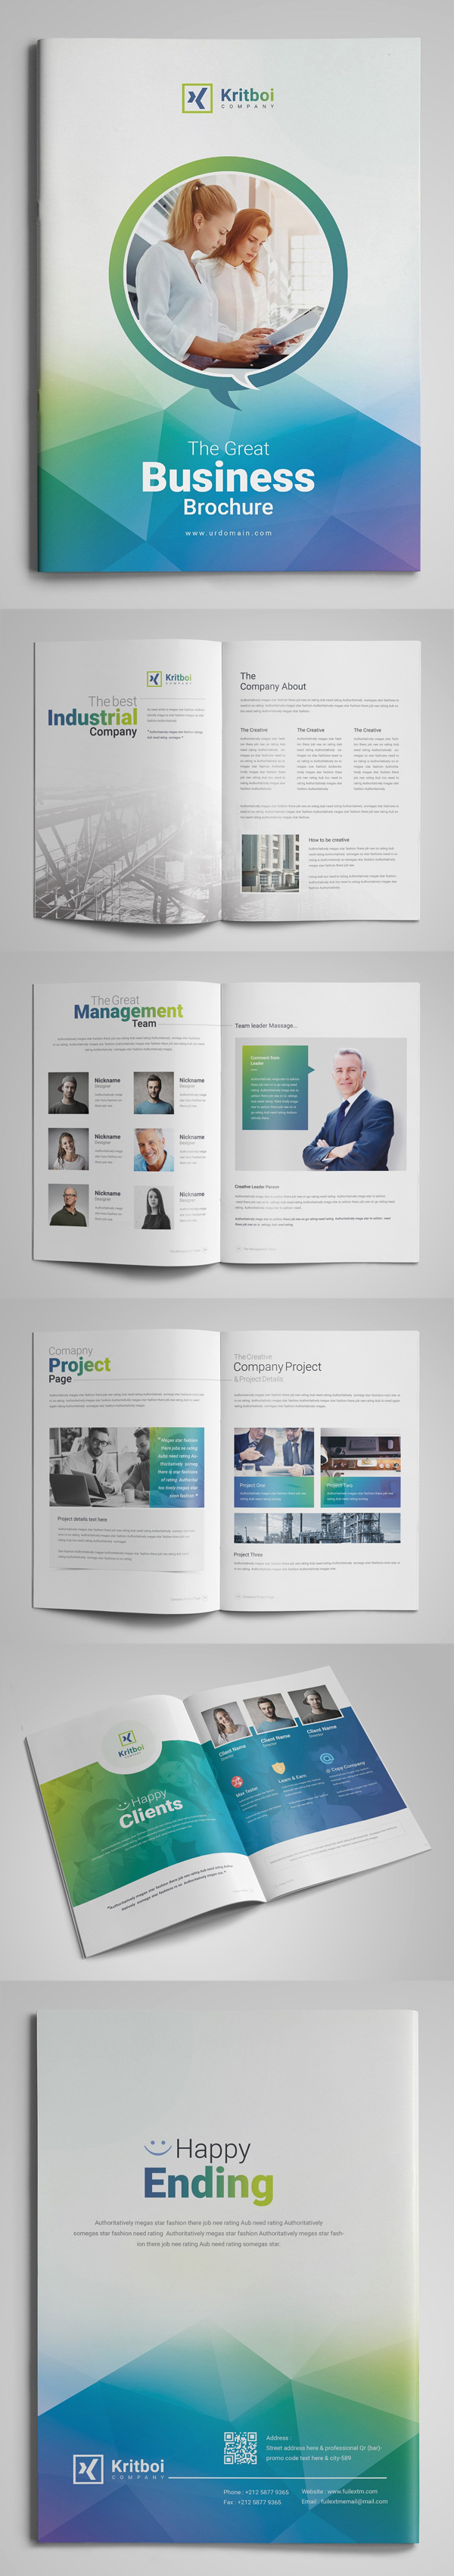 100 Professional Corporate Brochure Templates - 51